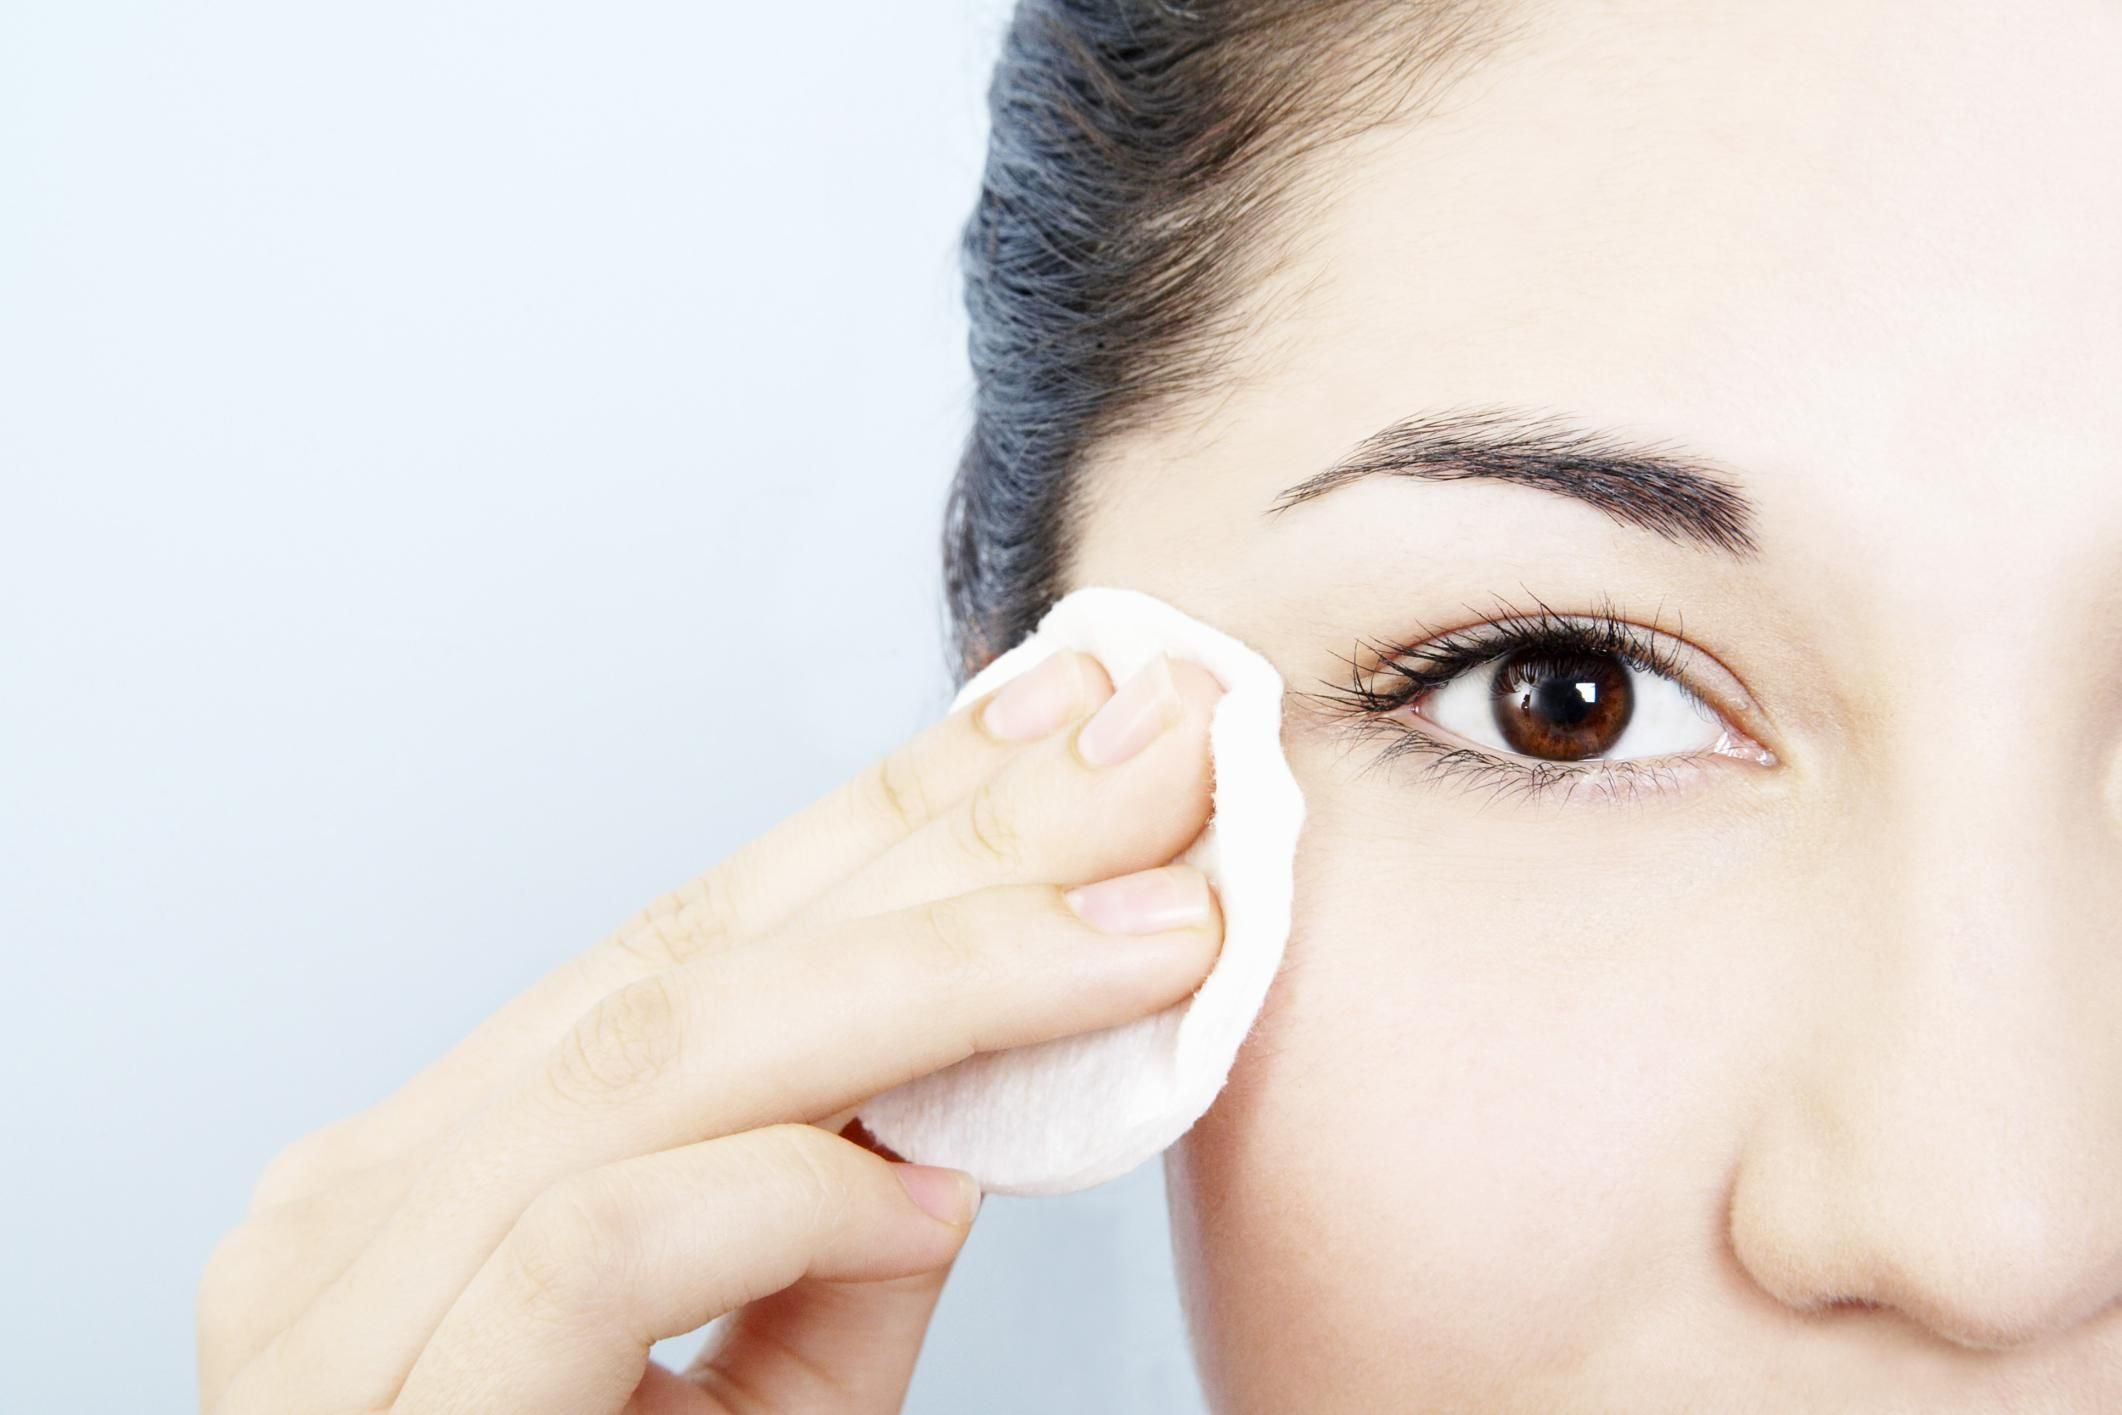 Easy Ways You Can Avoid Getting Styes Eye makeup remover